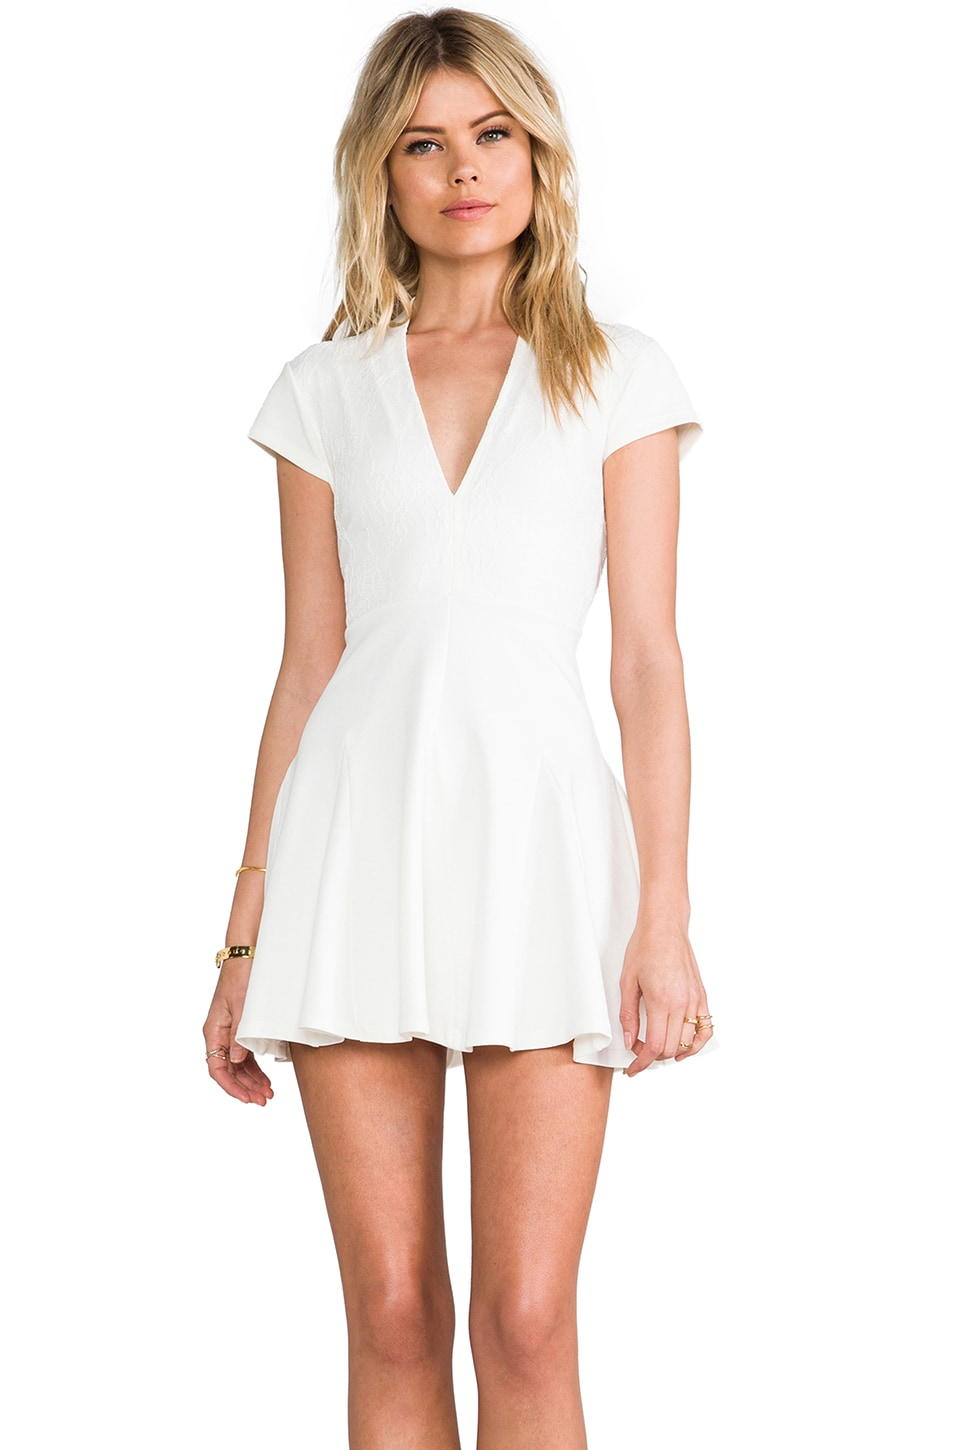 Pencey Lace Overlay Deep V Dress in White